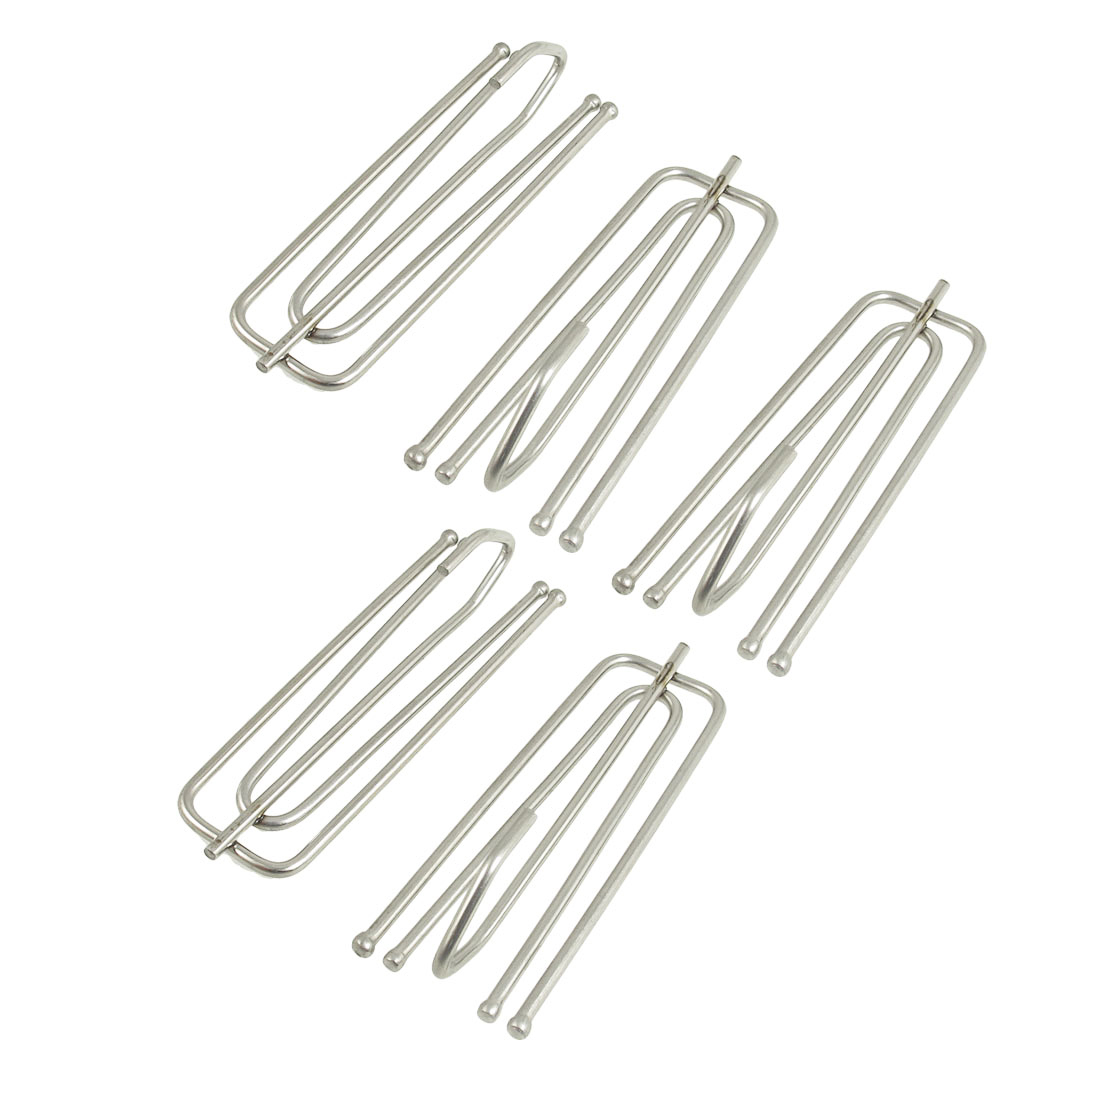 5 Pcs Deep Pinch Pleat Prong Curtain Hooks Silver Tone